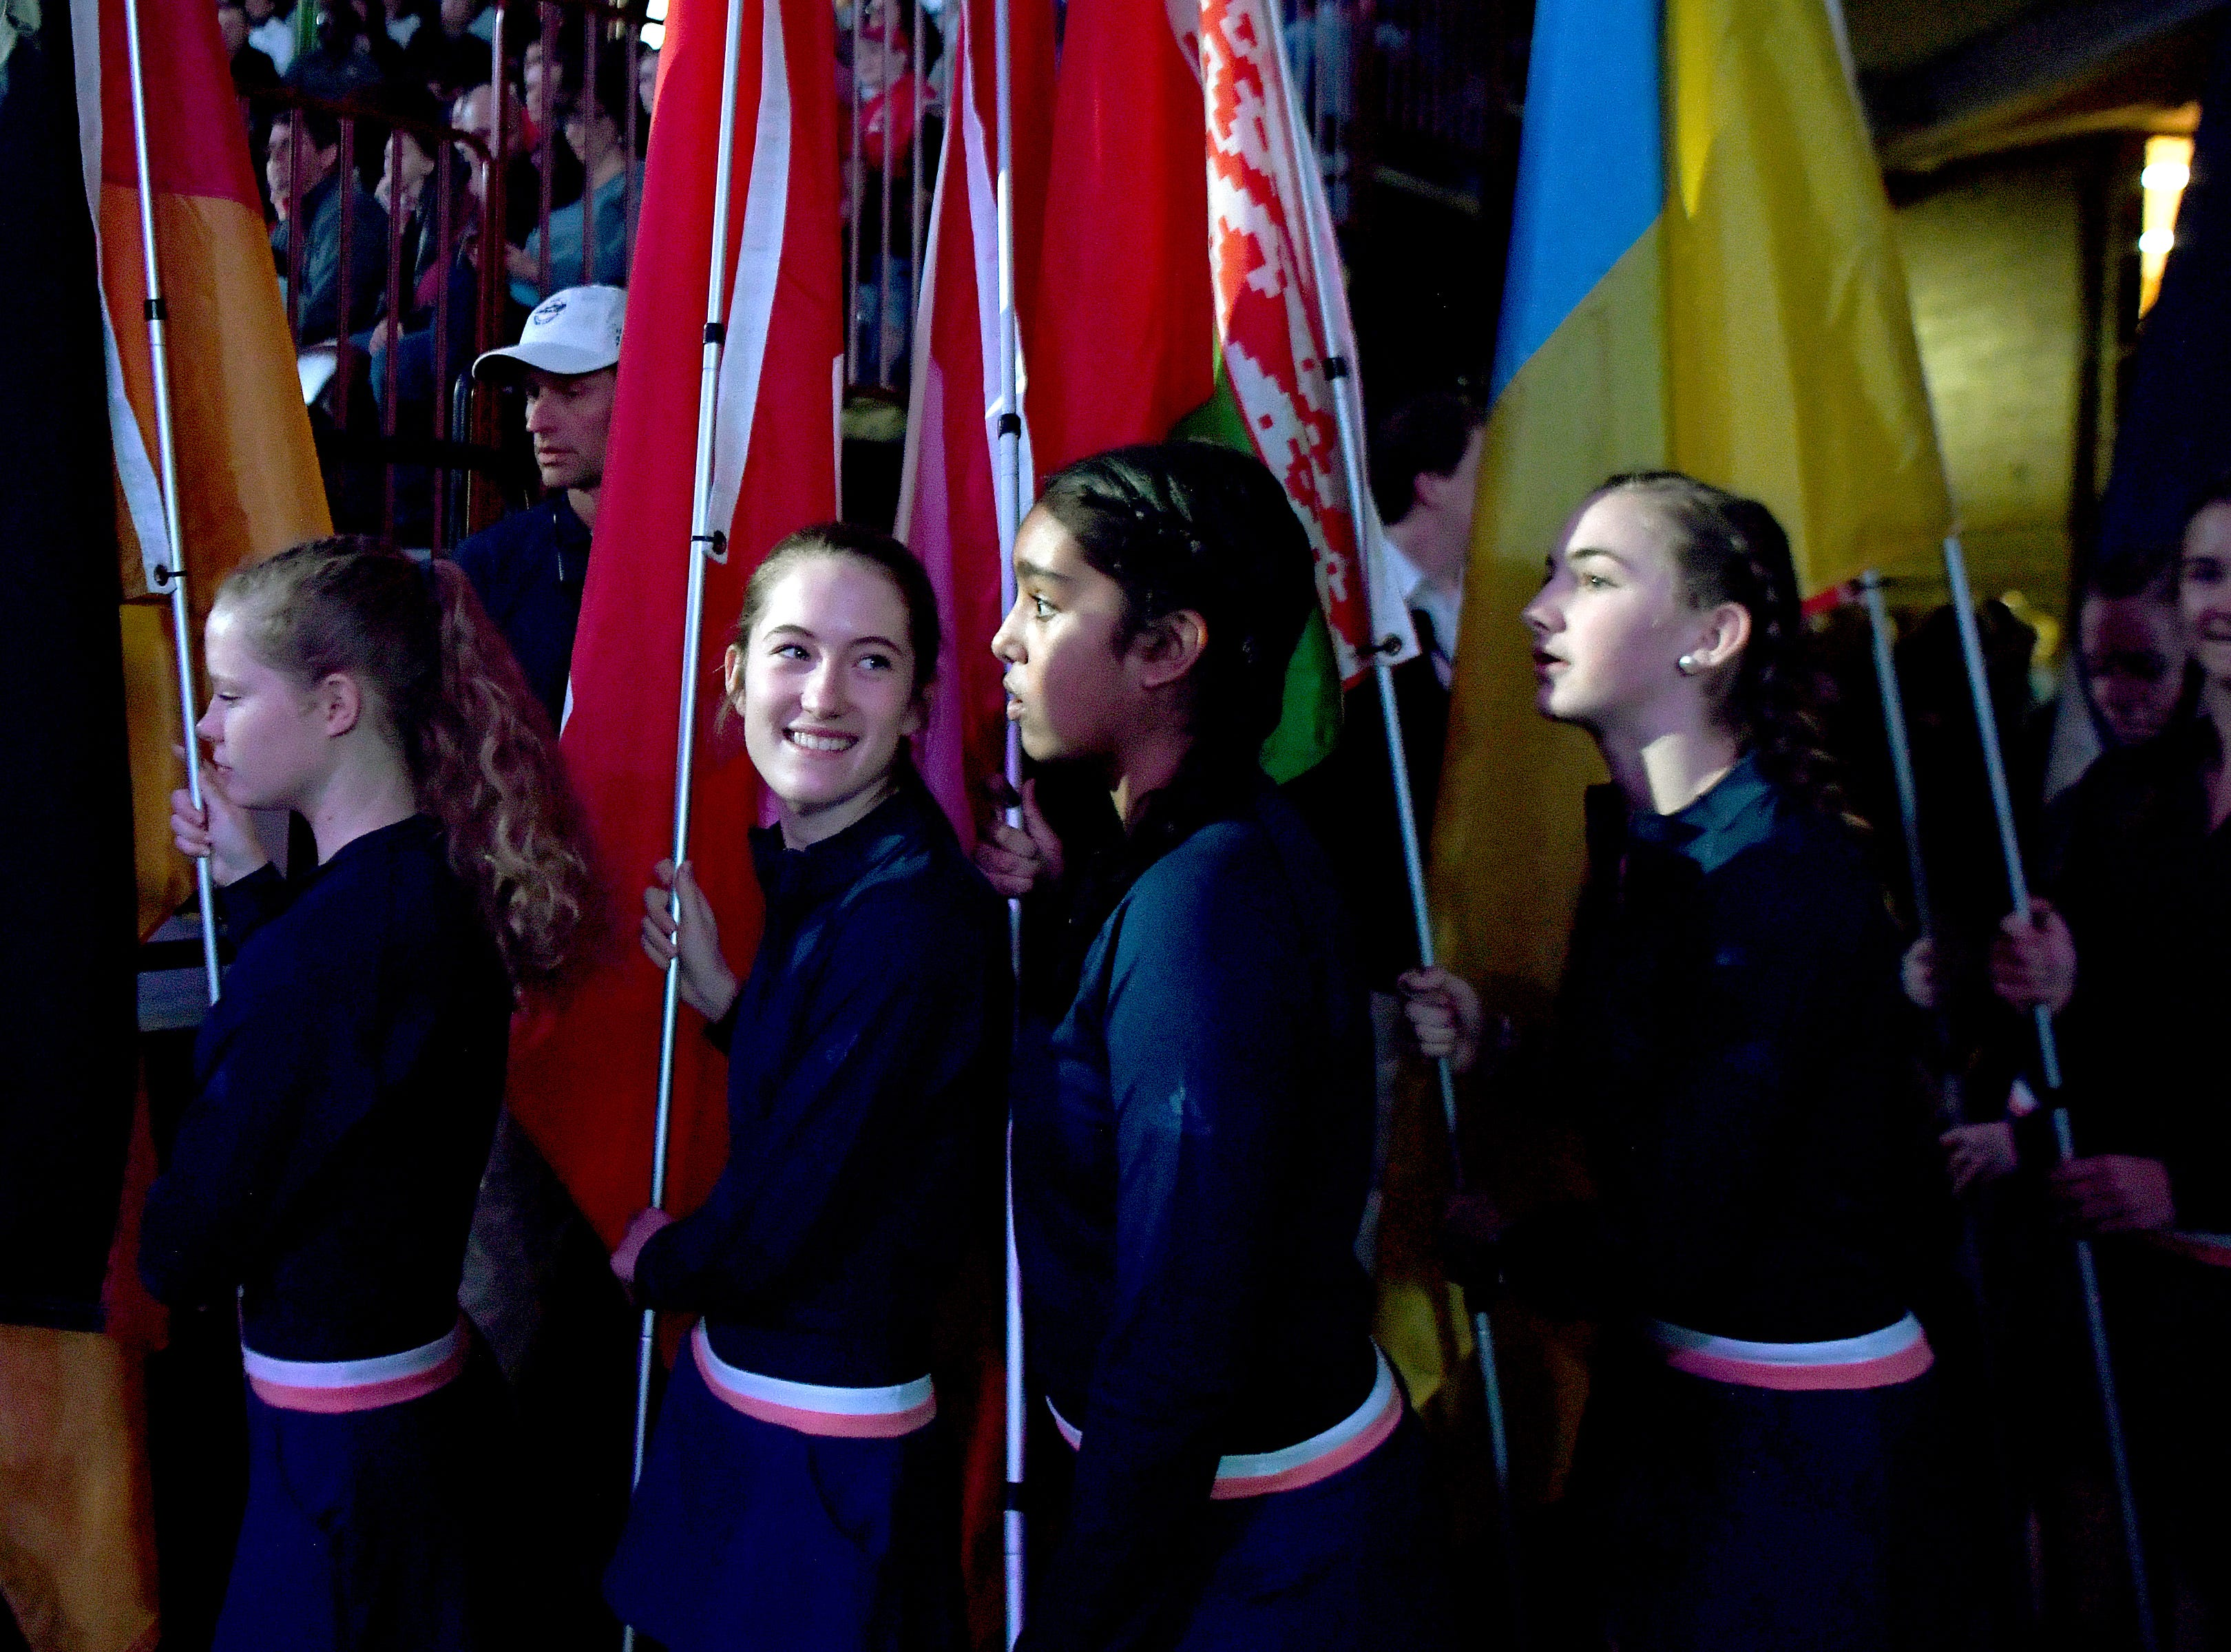 Dominique Grant looks back at Kirina Shah as they line up to take the court holding flags for the opening ceremony of the 2018 Fed Cup at the U.S. Cellular Center on Saturday, Feb. 10, 2018.